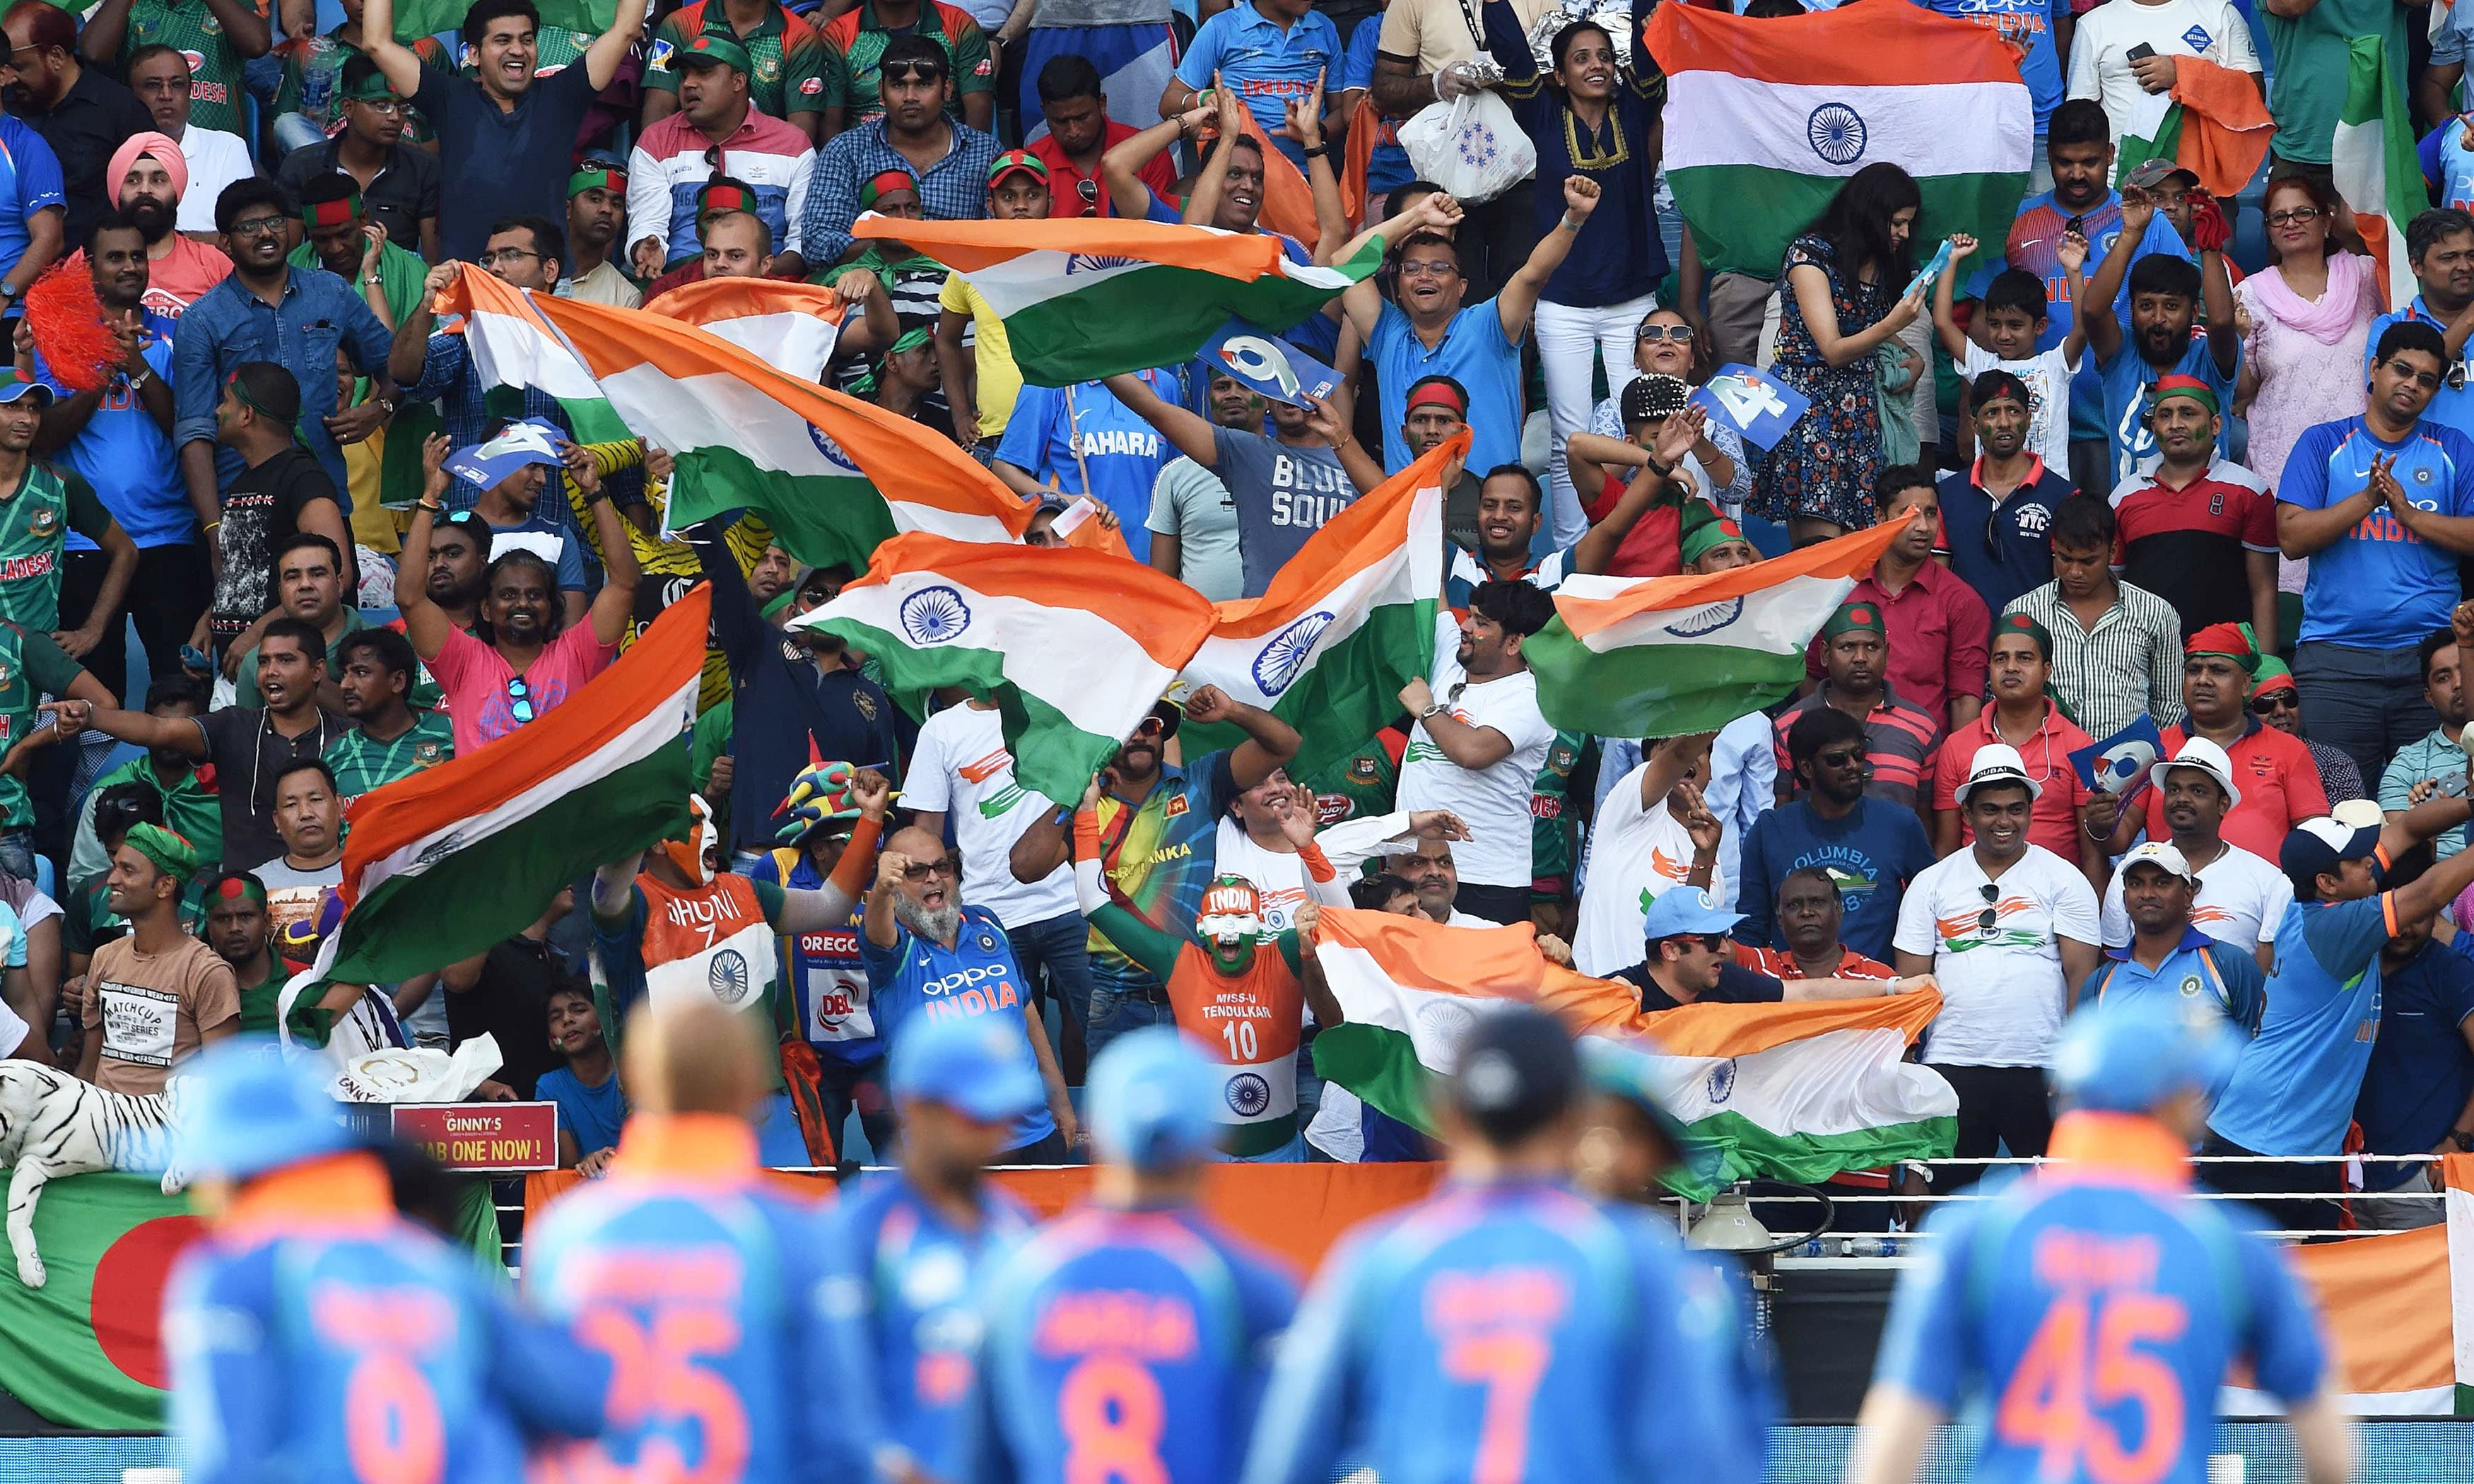 Indian cricket fans cheer in support of their national team. —AFP